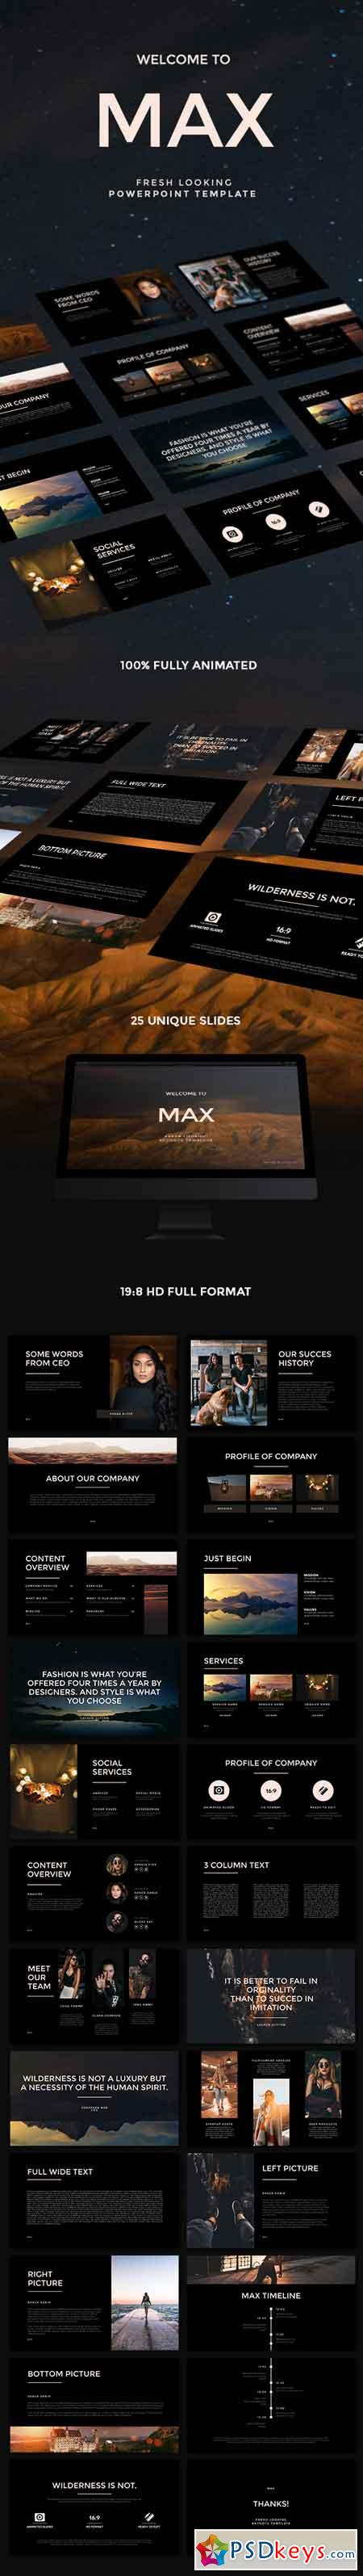 MAX Fresh Looking PowerPoint Template 22606464